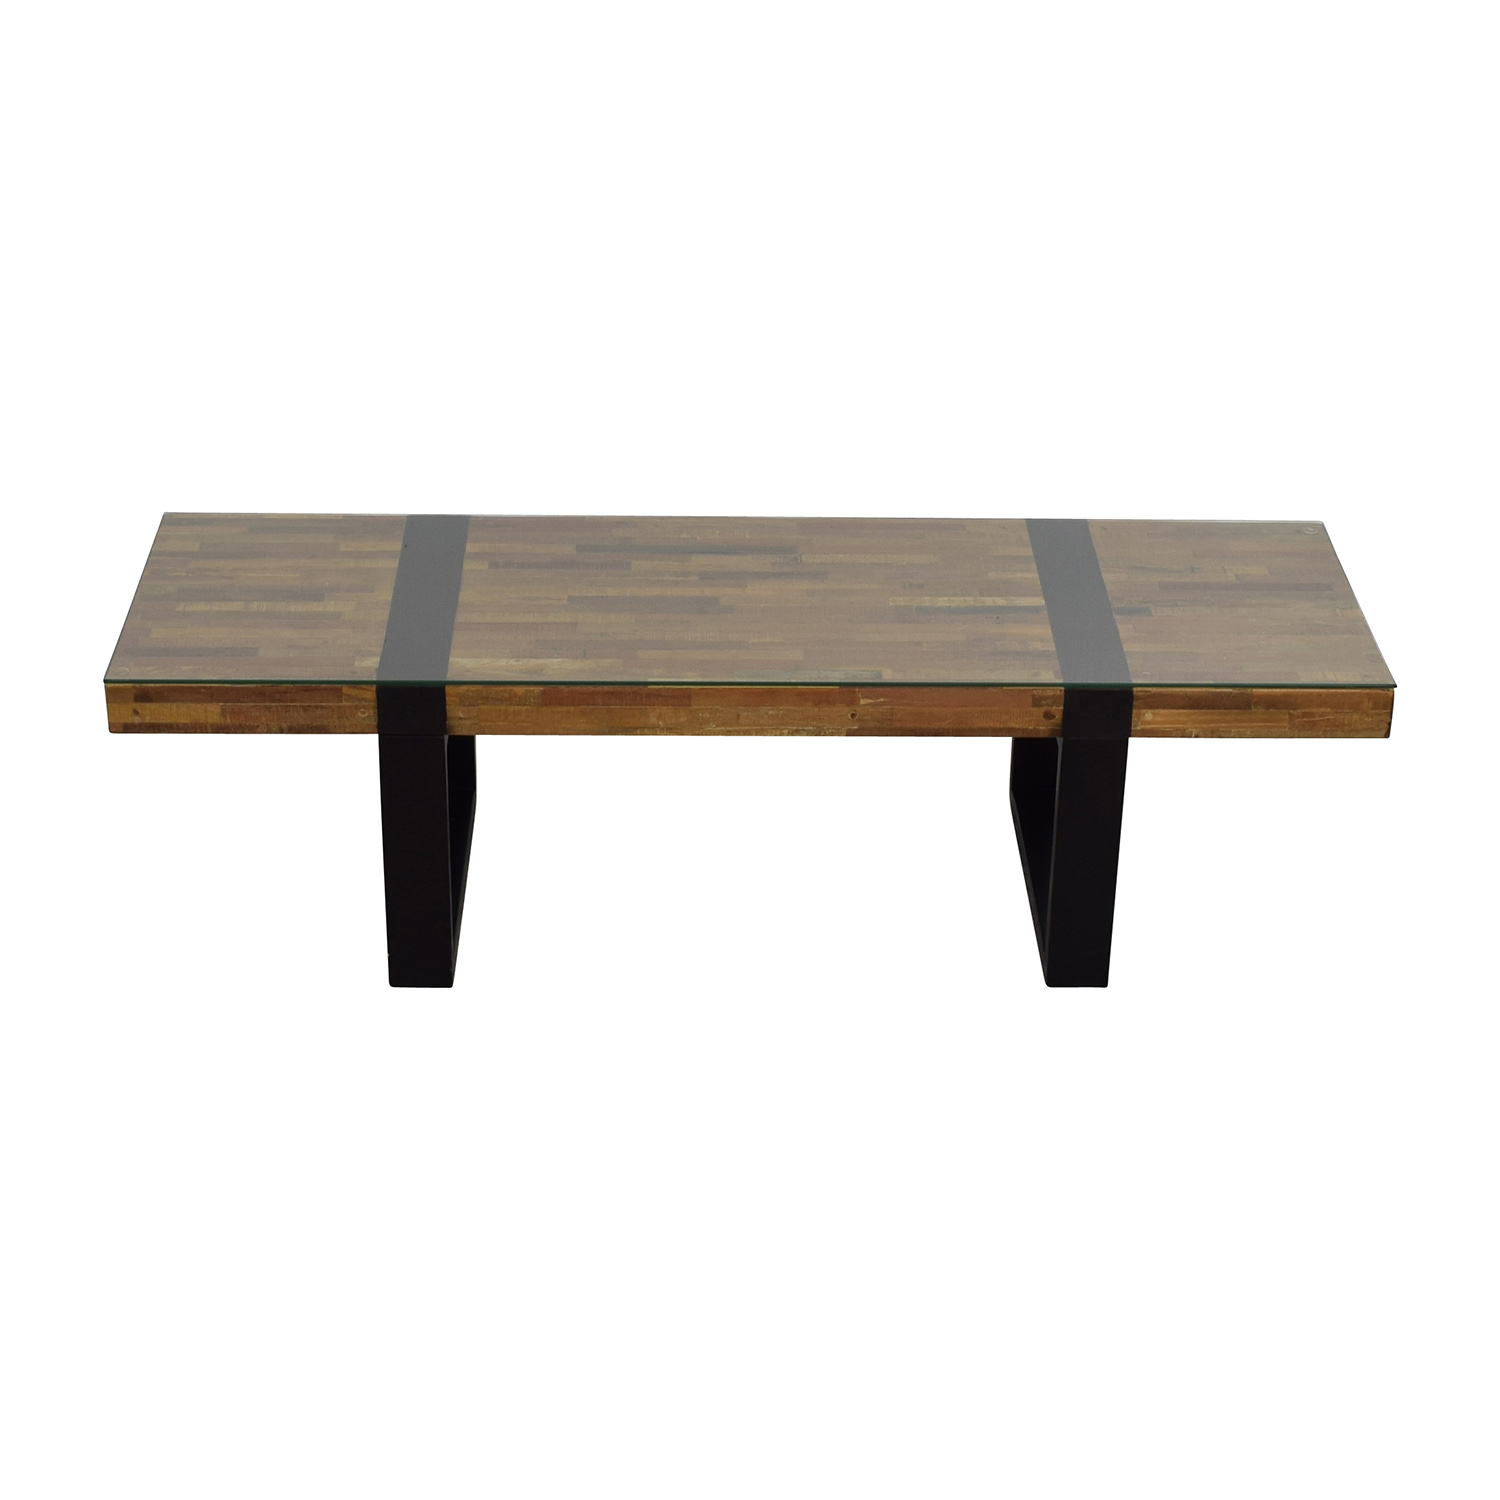 Crate barrel crate barrel seguro rectangular coffee table discount